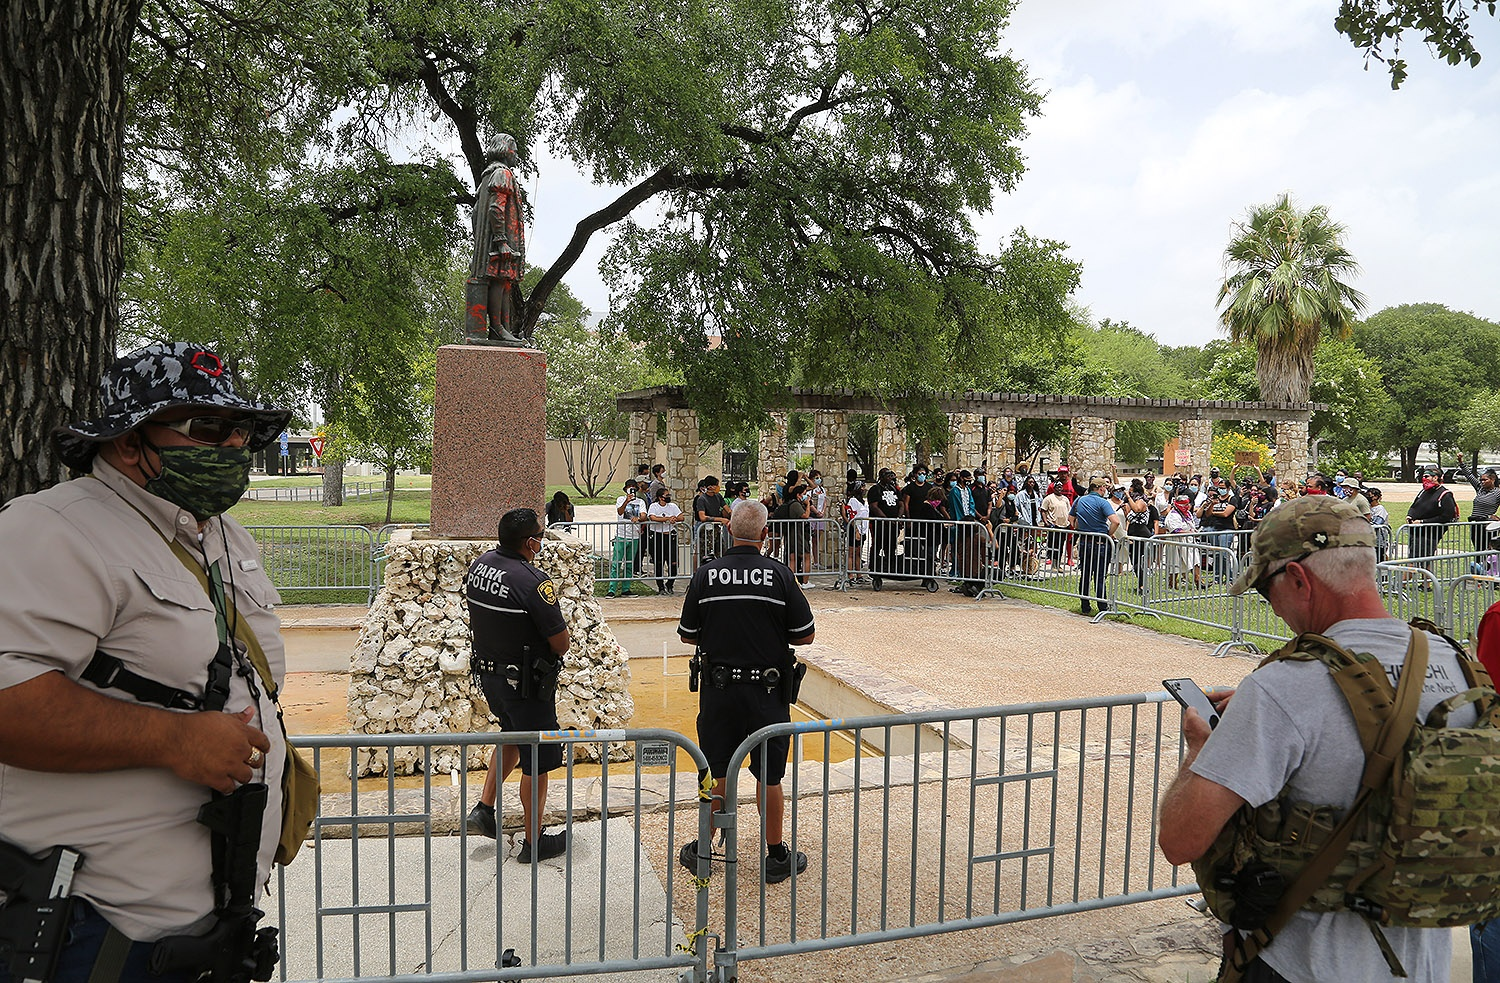 Barricades separate advocates for the removal of the Christopher Columbus statue and armed men who want to see it stay in place Saturday, June 27, 2020, at Columbus Park, 200 Columbus St. Photo by Ben Olivo | Heron